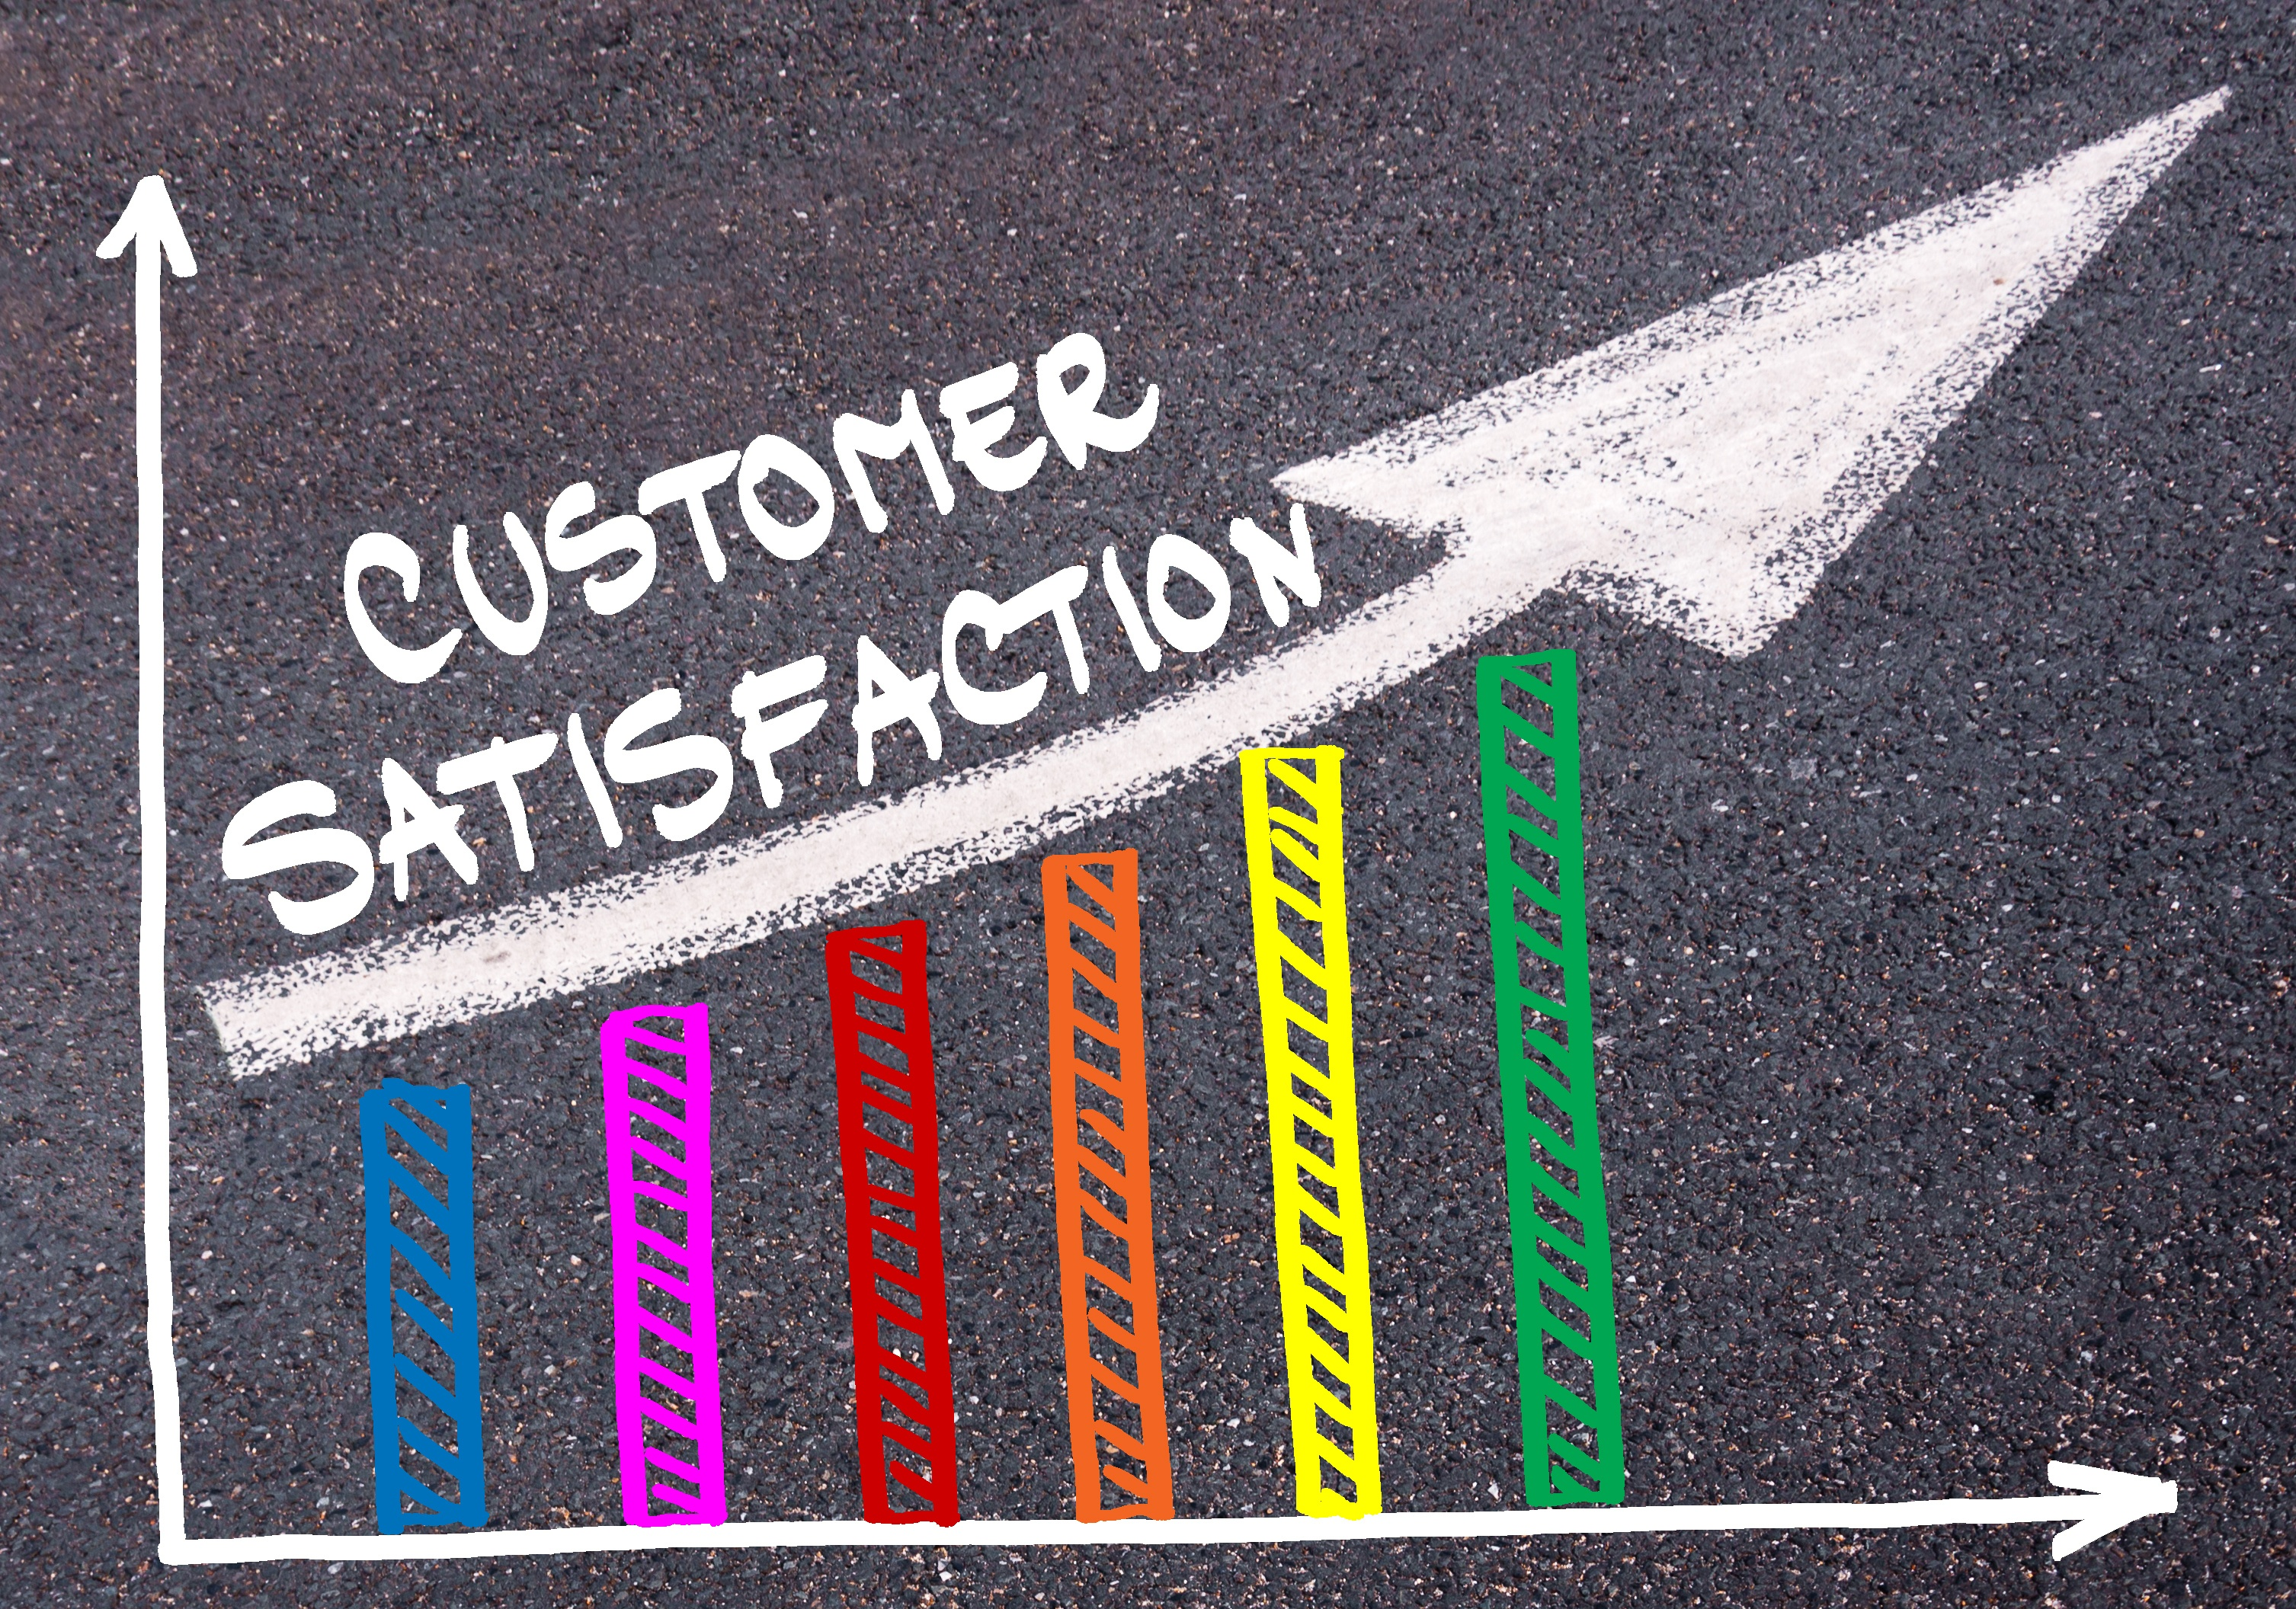 La customer satisfaction di NeMO la rilevazione del 2017